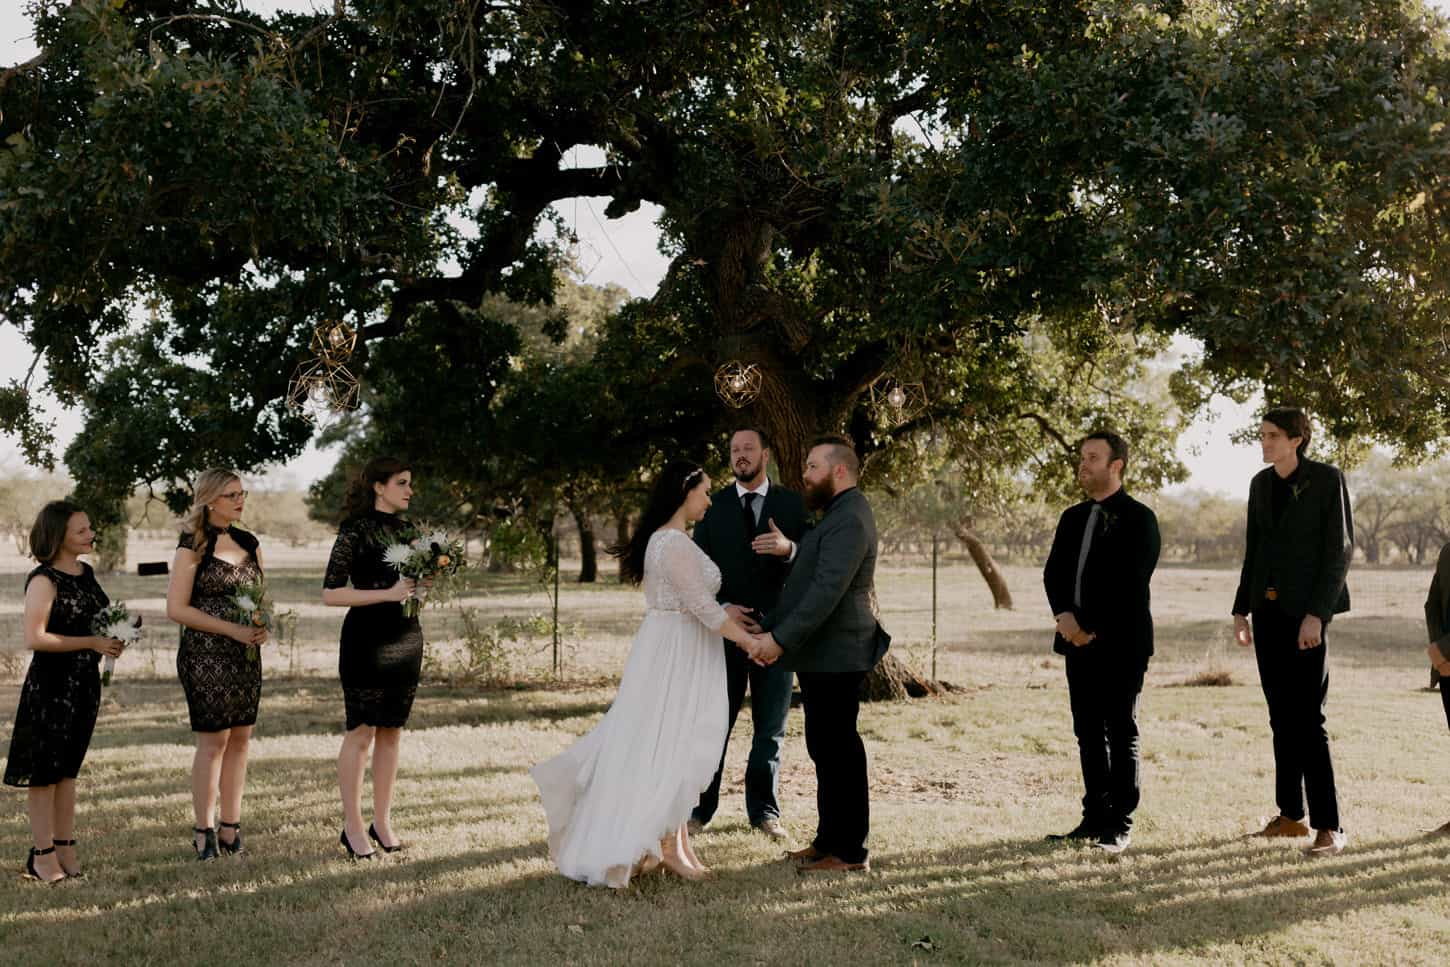 508-nicholas-and-kasi-burleson-farm-wedding-dallas